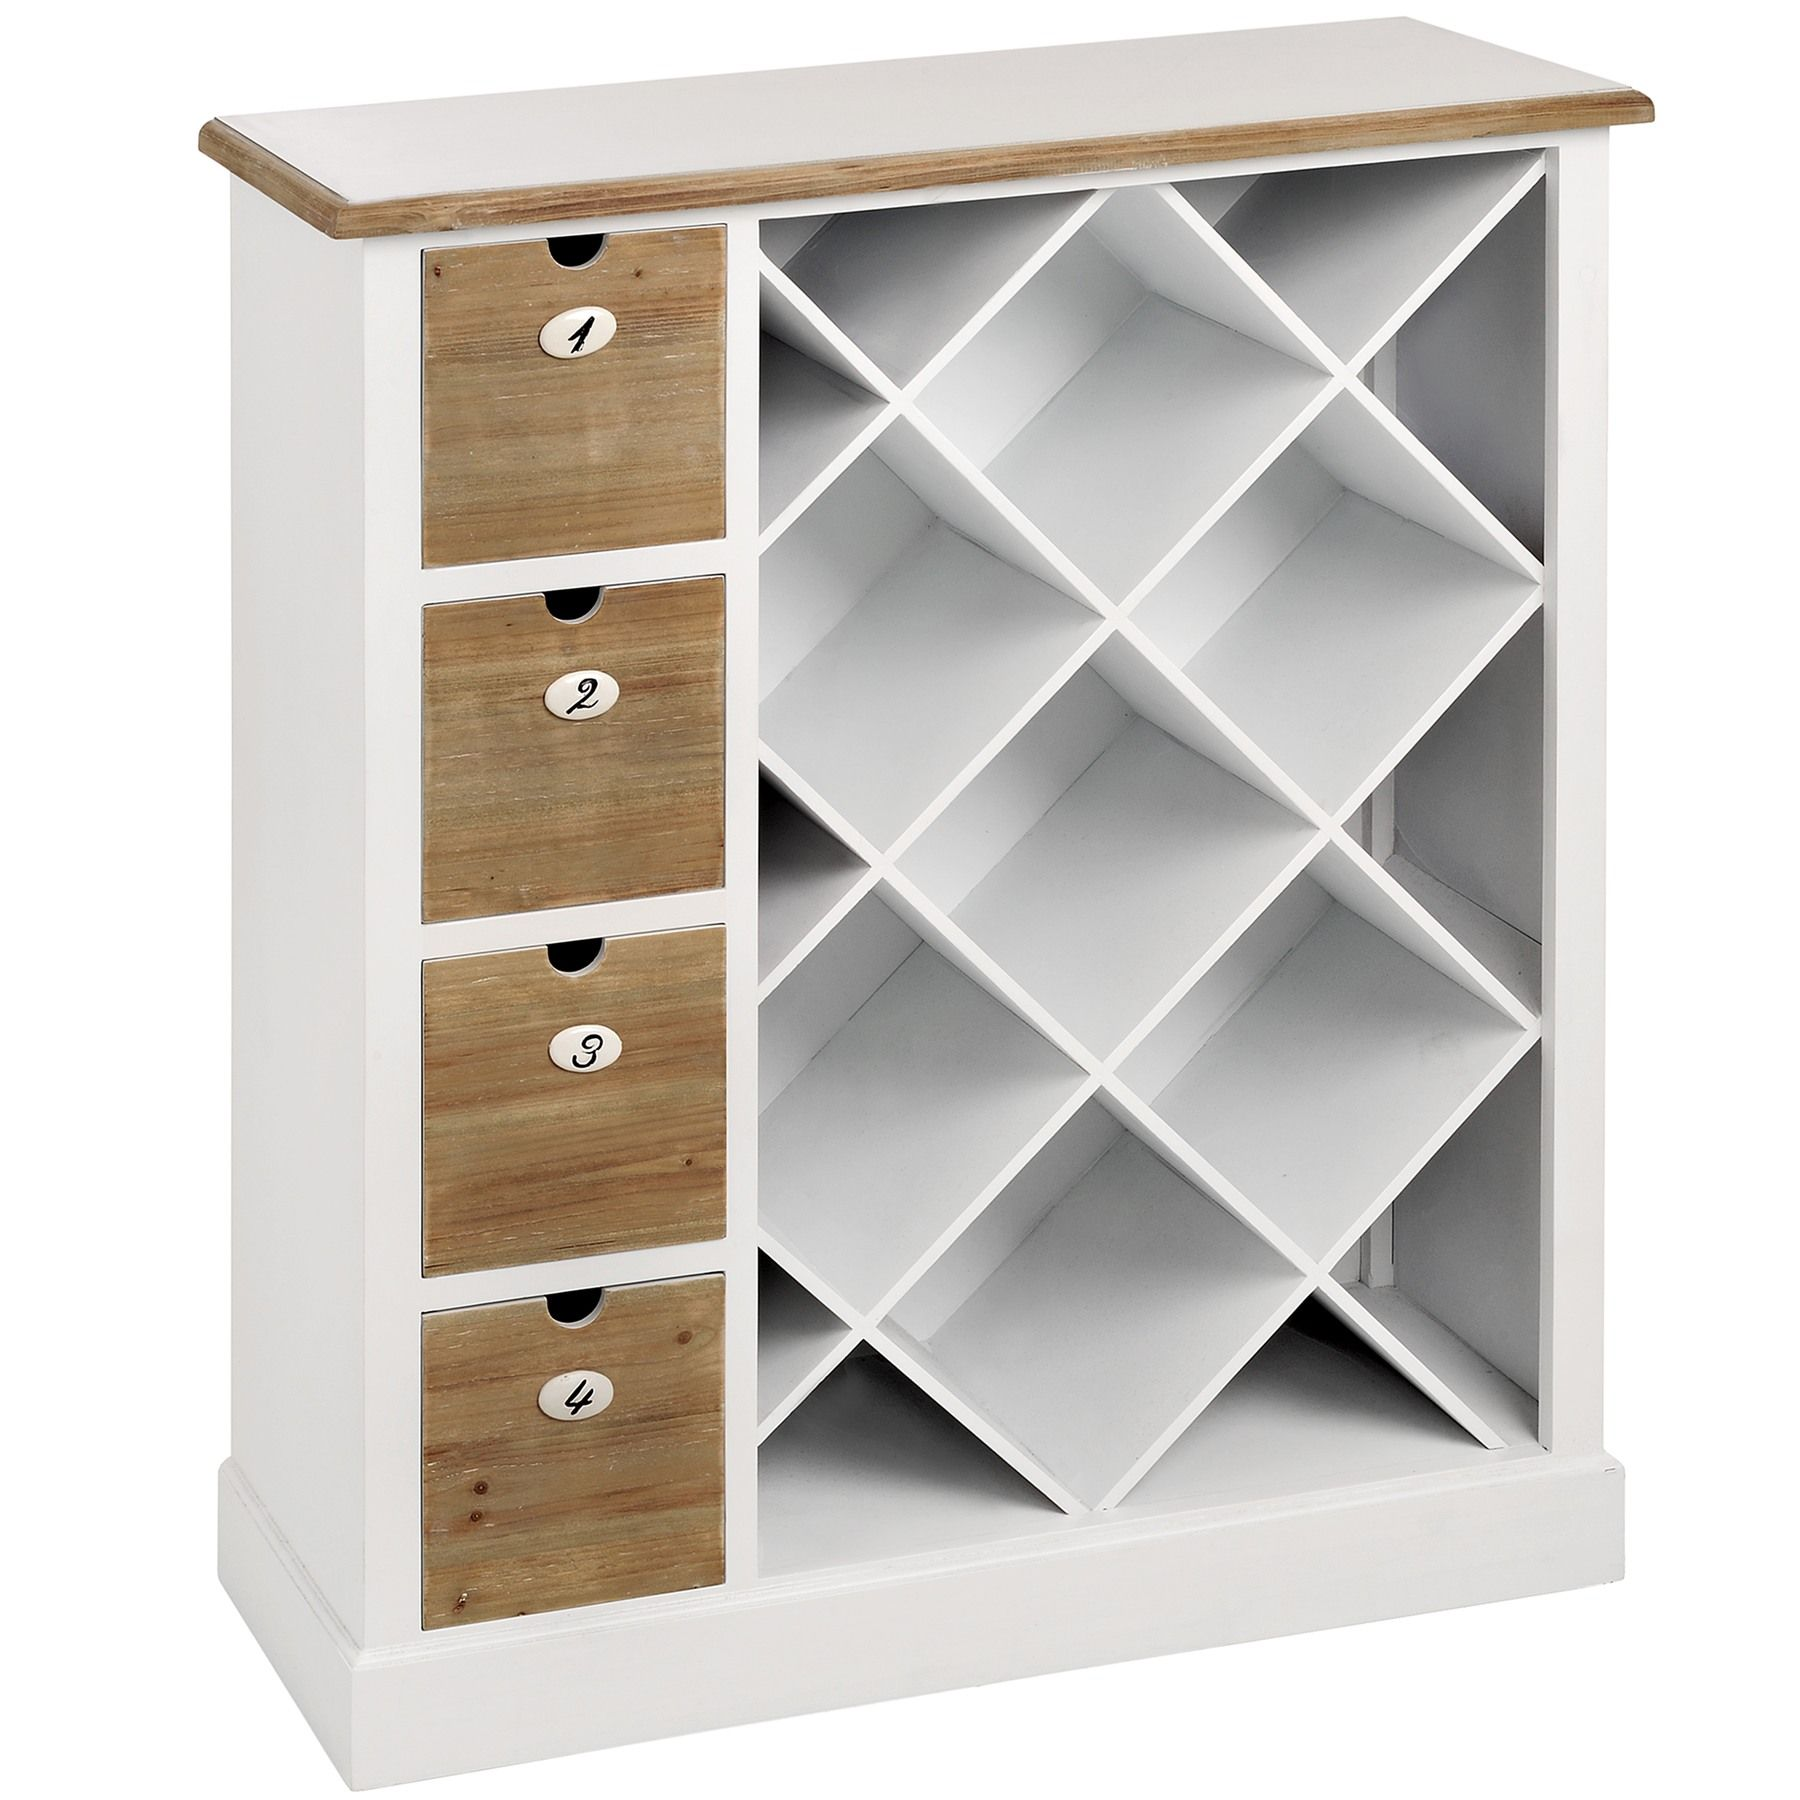 Shaker white wooden wine storage cabinet